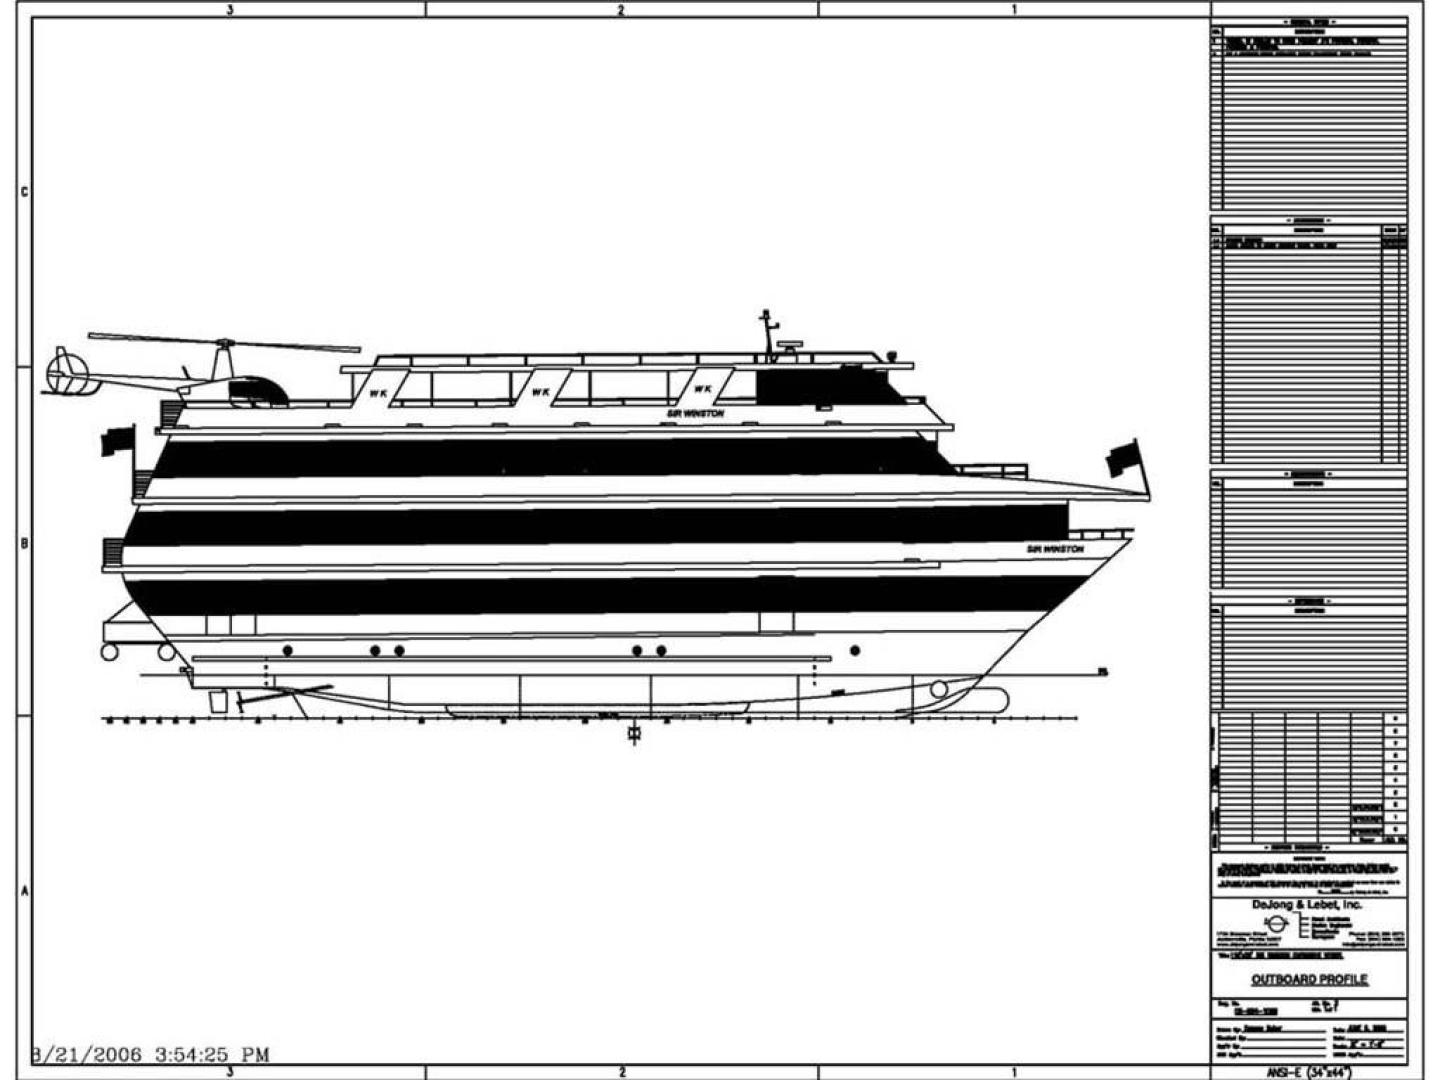 Custom-Keith Marine Dinner Boat 2006-Sir Winston Tampa-Florida-United States-Rendering-367635 | Thumbnail